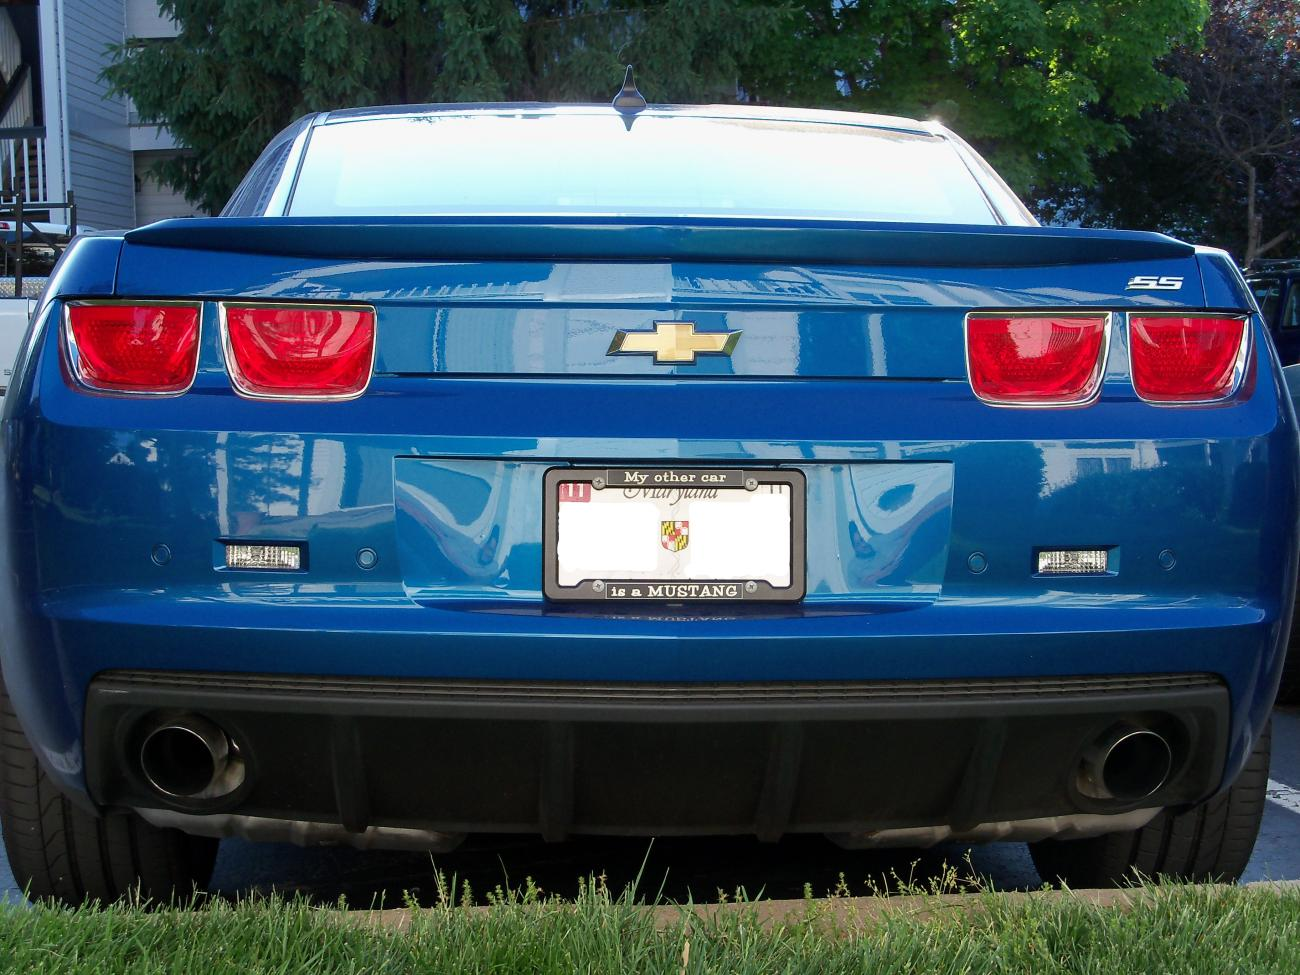 Opinions Wanted On This License Plate Frame Camaro5